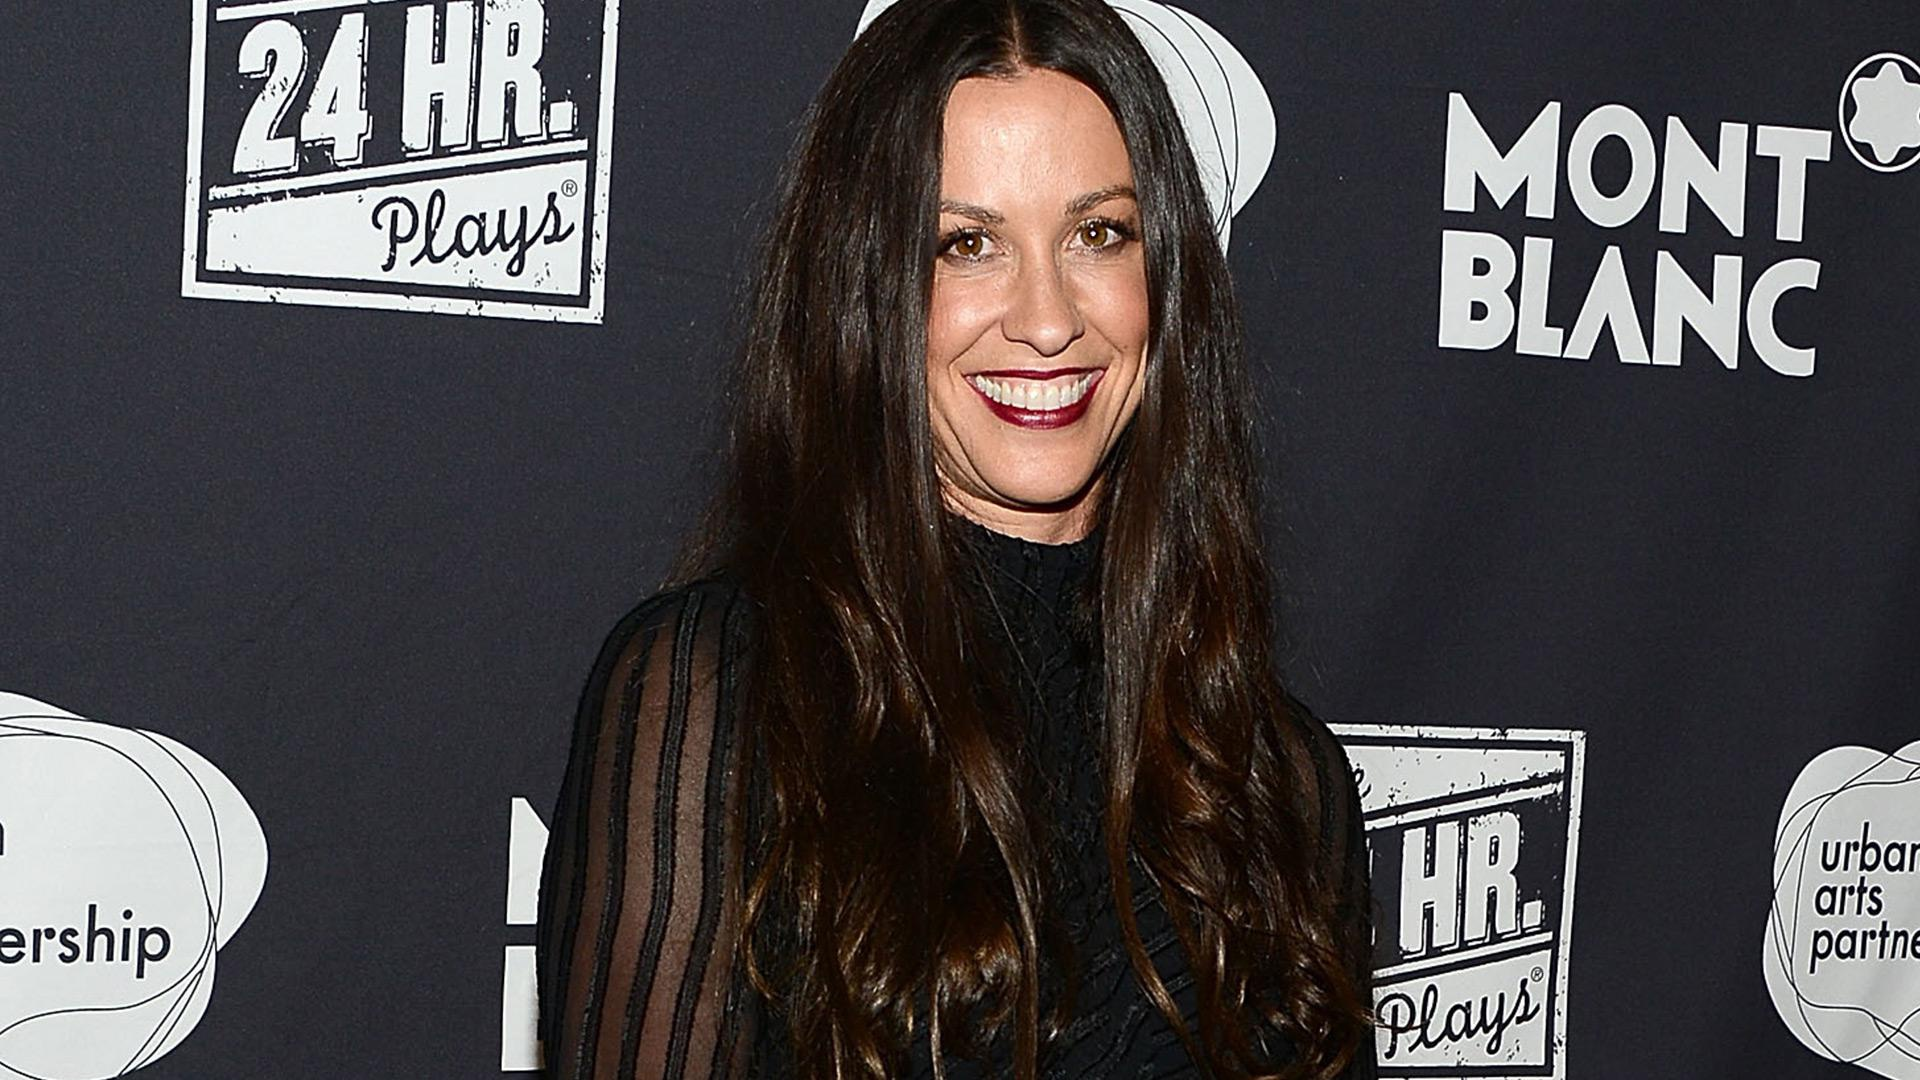 Alanis Morissette shares a nursing photo for World Breastfeeding Week (VIDEO)